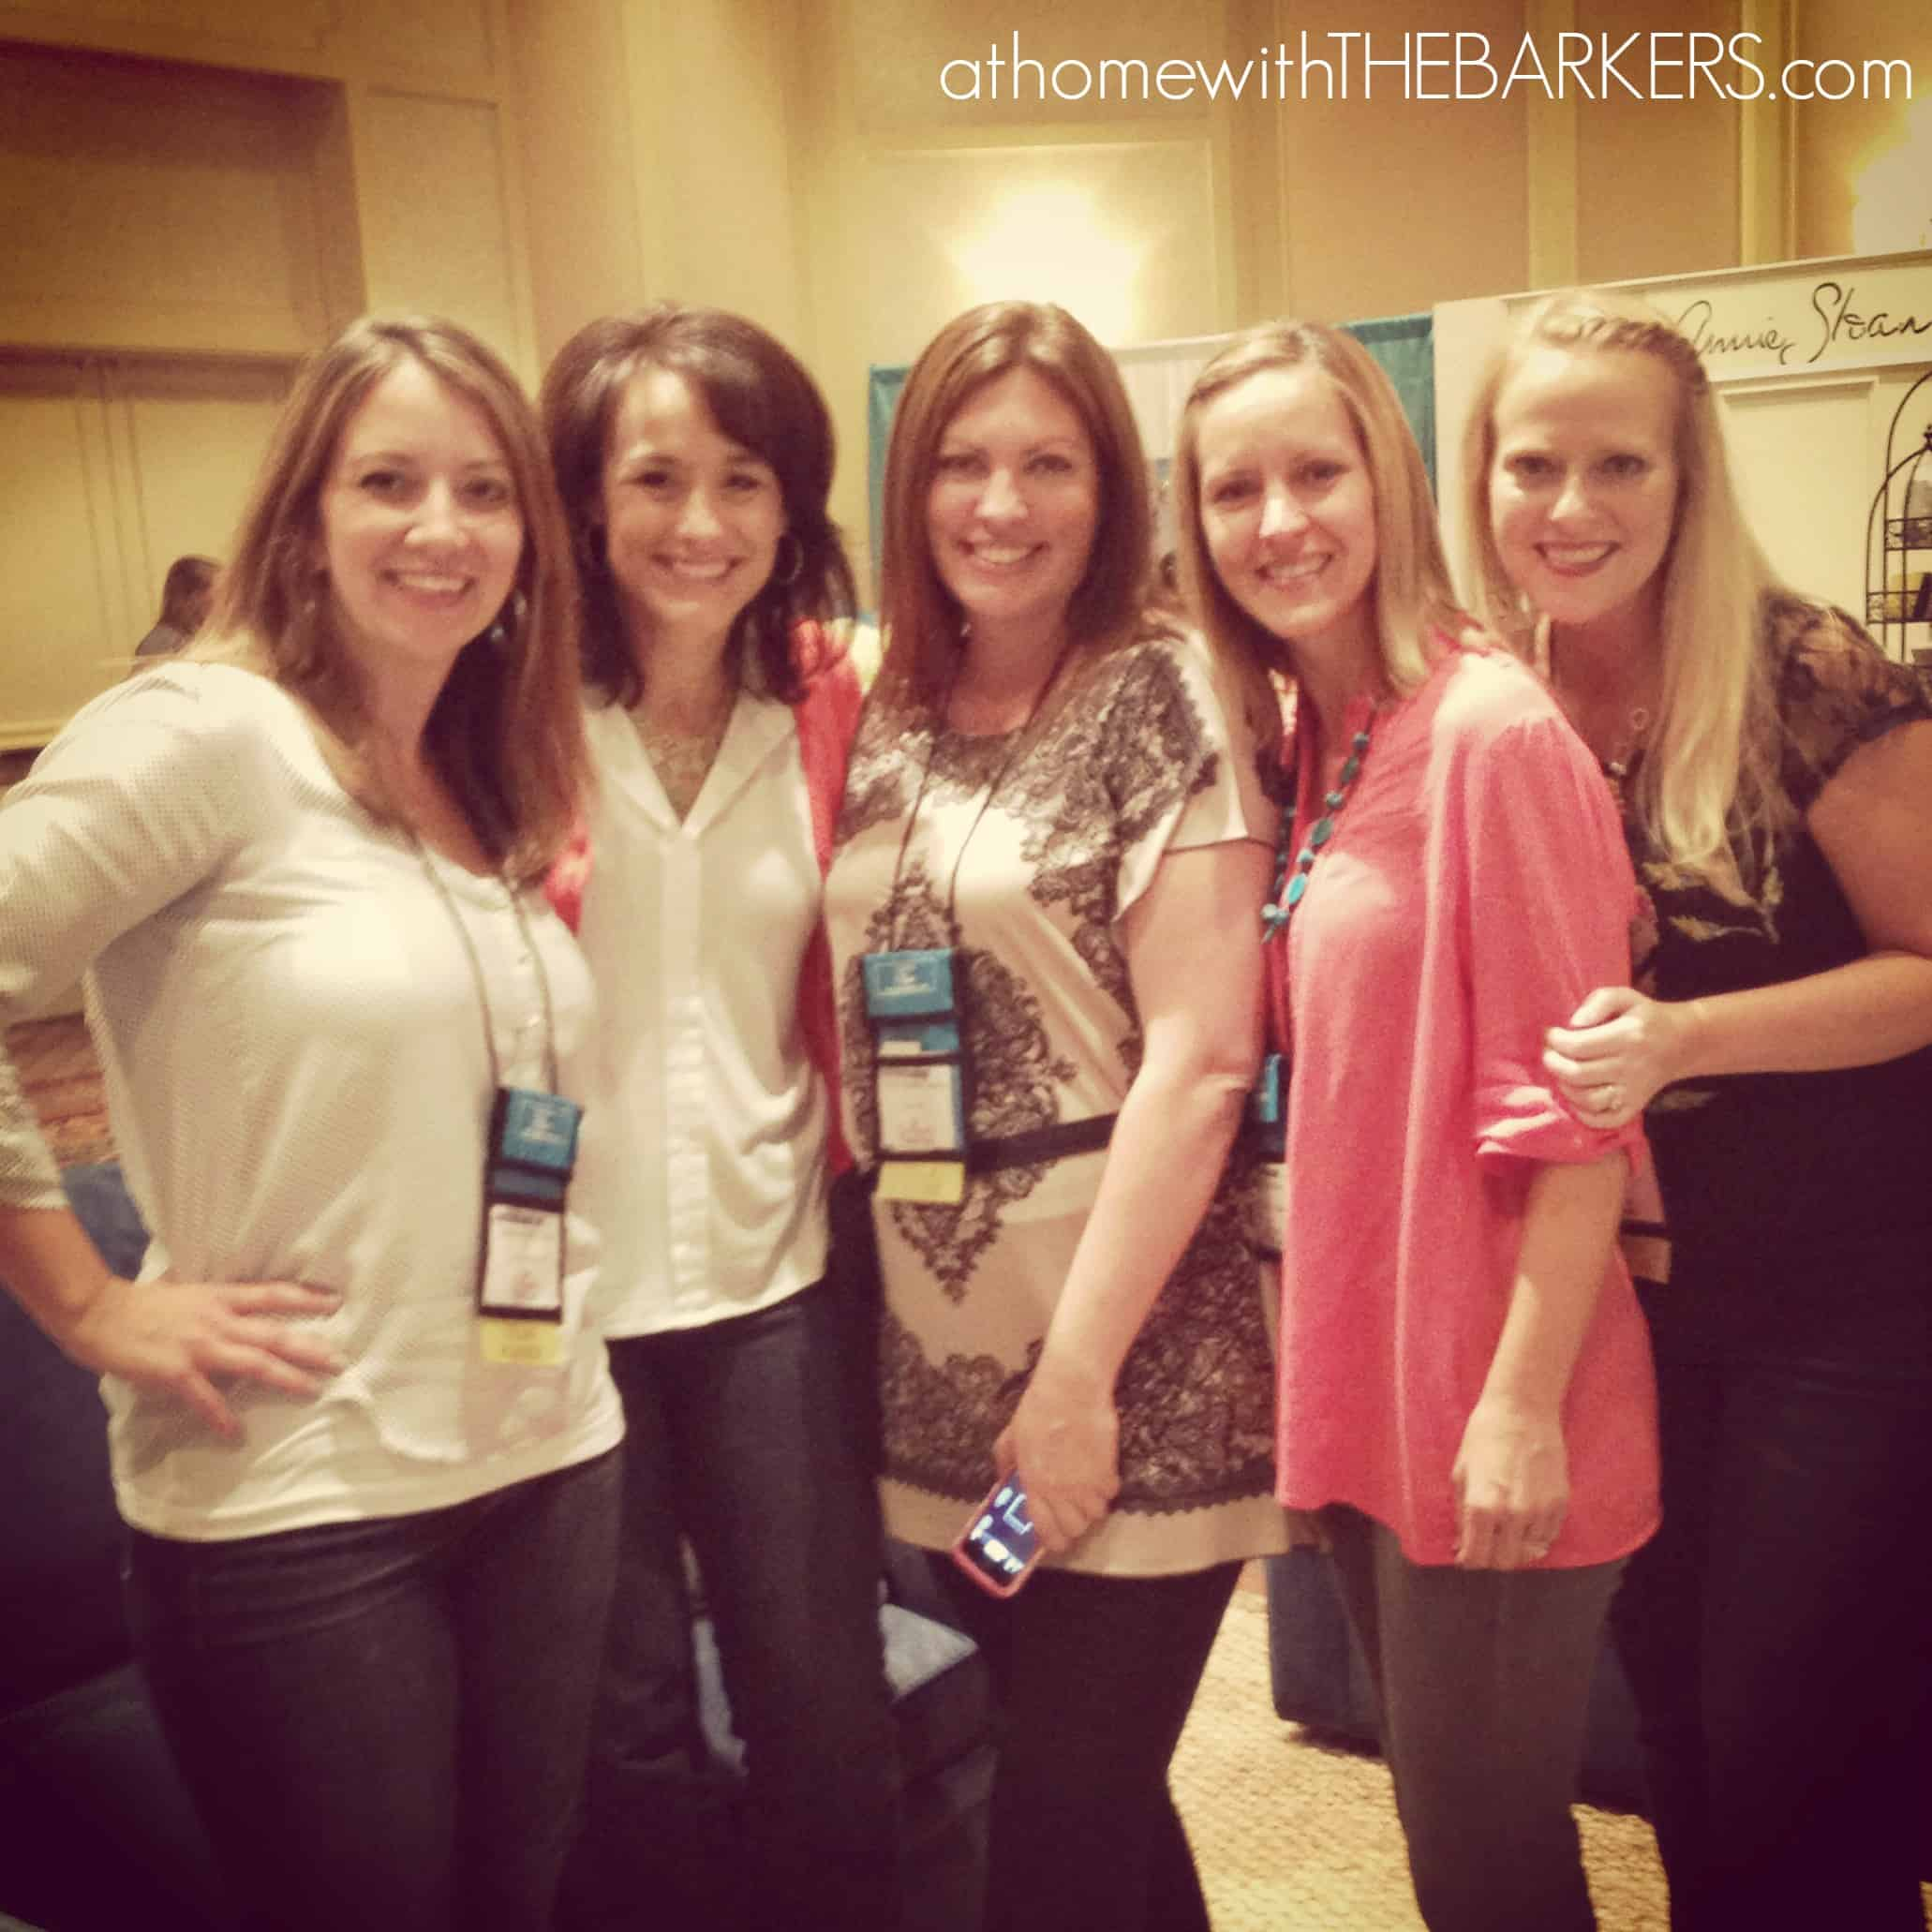 HAVEN 2013 {what I learned}